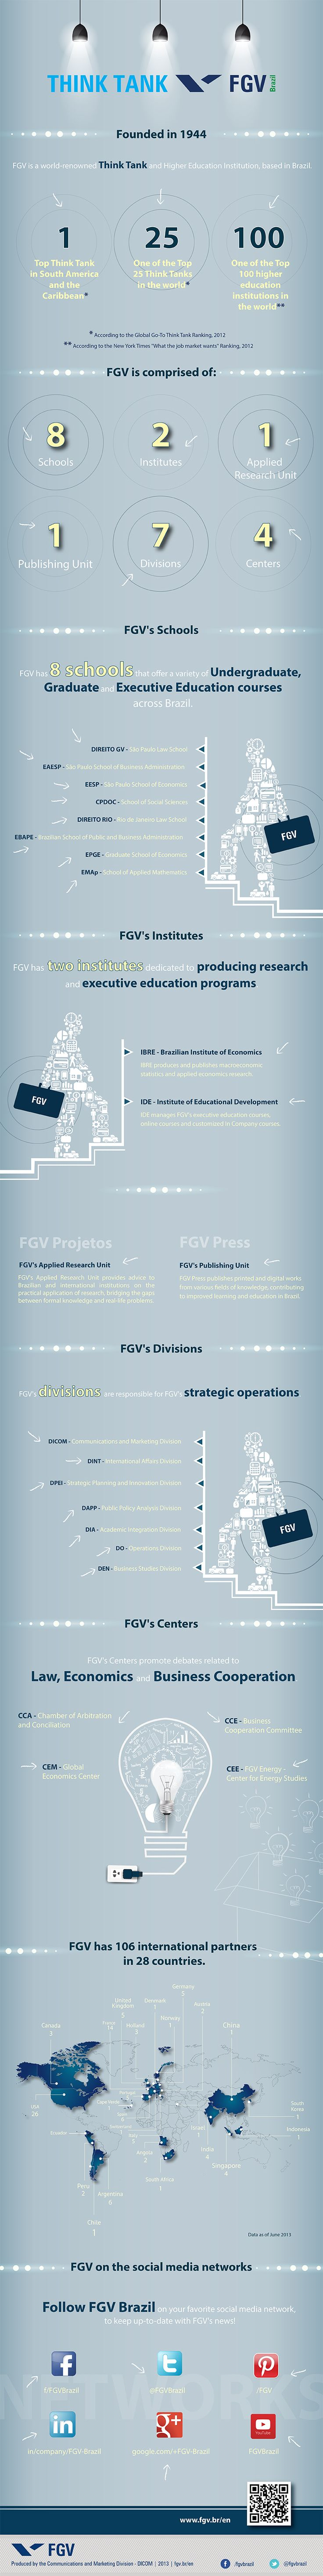 """This infographic summarizes the structure of FGV; one of the Top 25 Think Tanks and Top 100 higher education institutions in the world, according to the Global Go-To Think Tank Ranking, 2012, and New York Times """"What the job market wants"""" Ranking, 2012. www.fgv.br/en"""